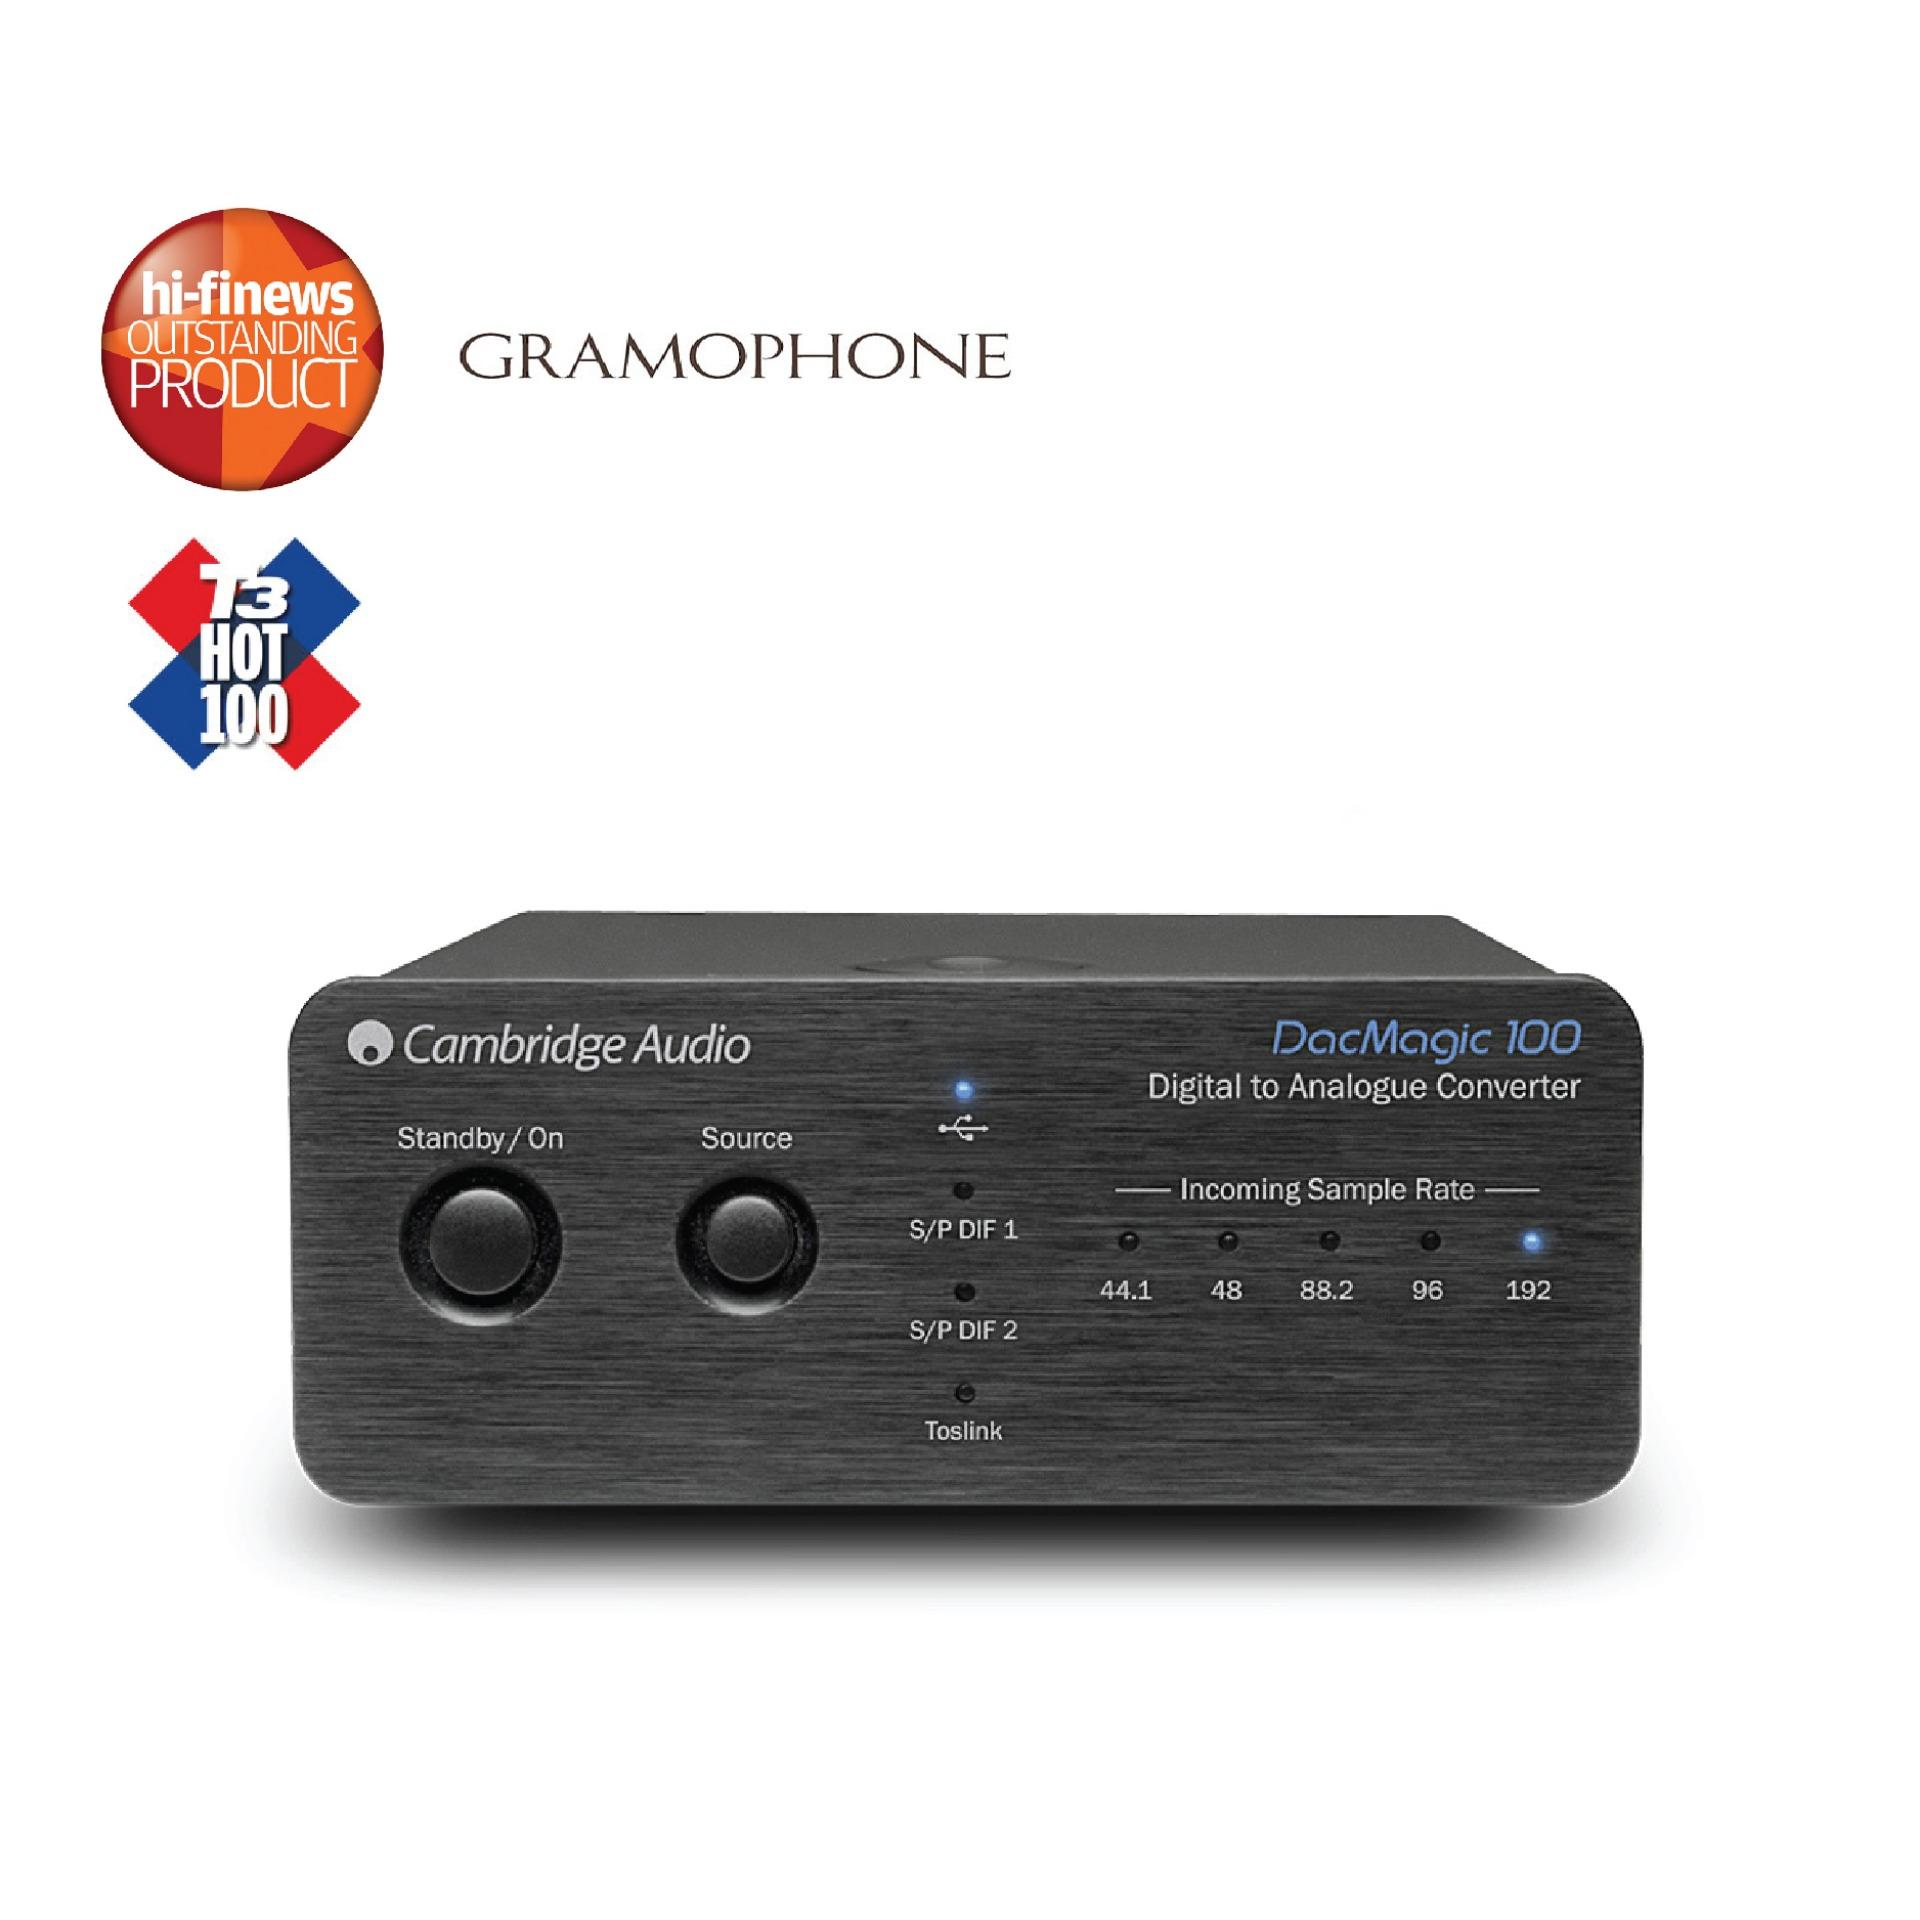 Cambridge Dacmagic 100 Digital To Analogue Converter By Cambridge Audio Singapore.